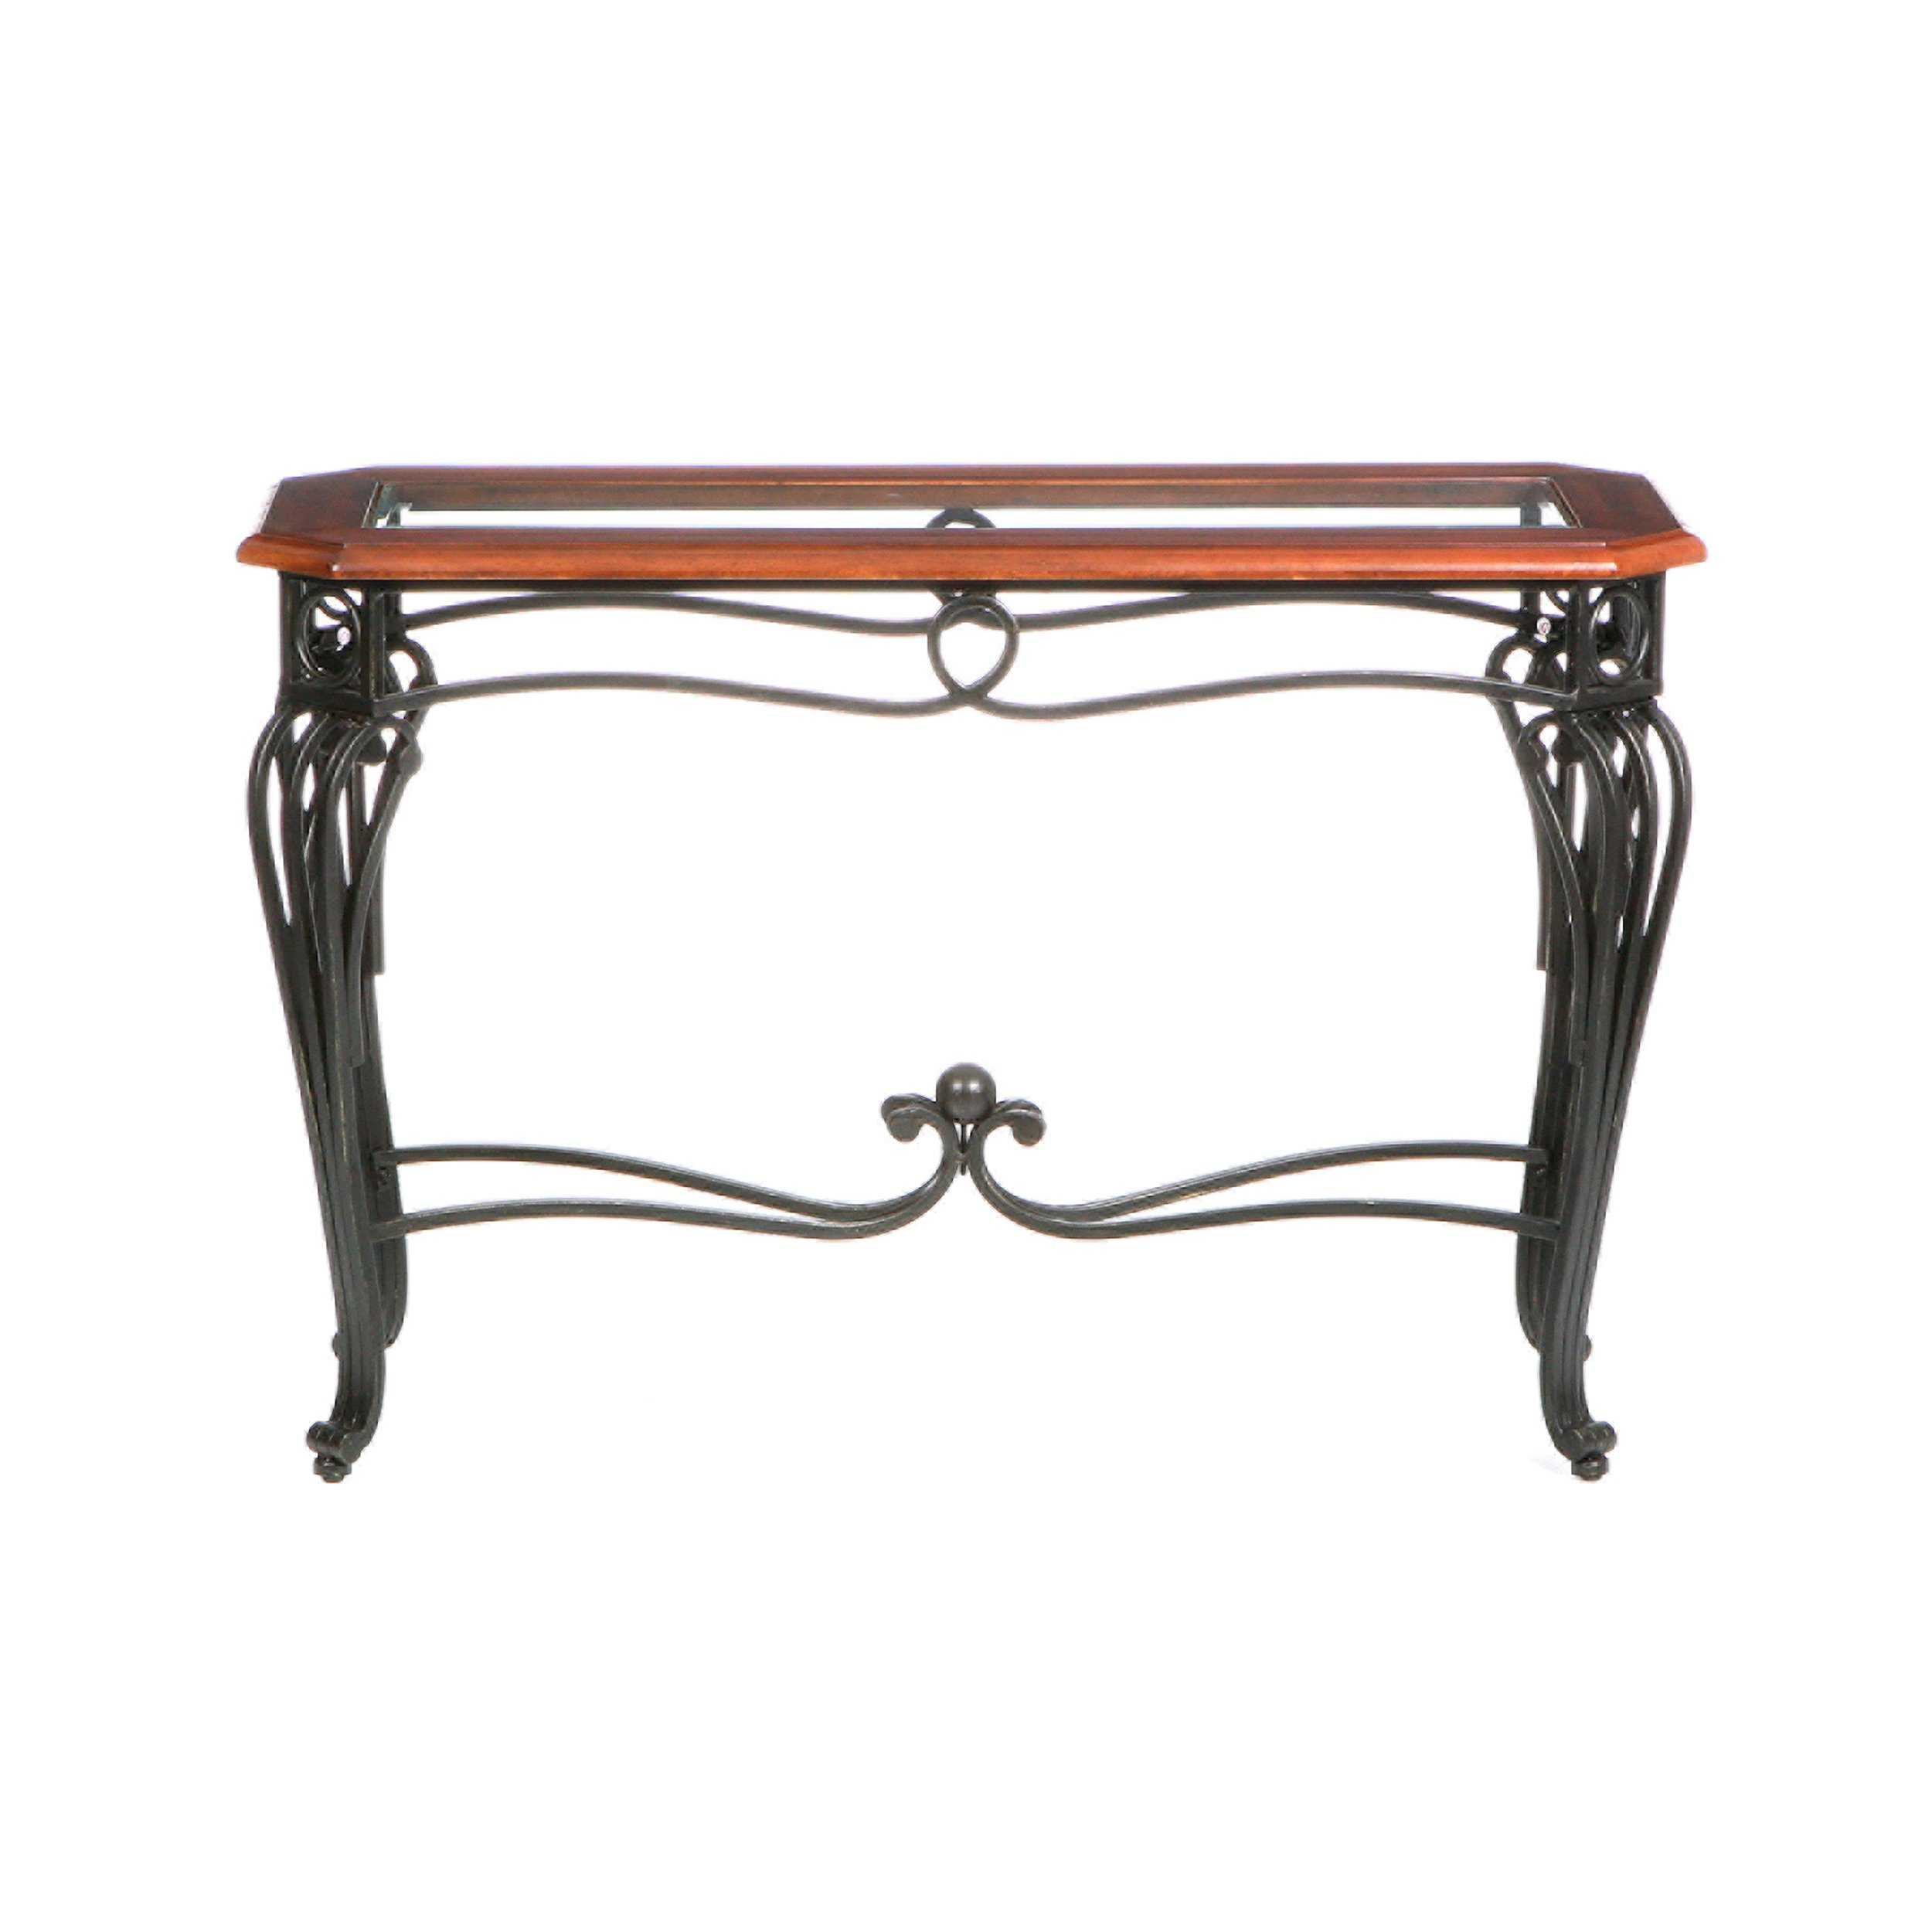 Southern Enterprises Prentice Sofa Console Table, Dark Cherry with Black Finish by Southern Enterprises, Inc.